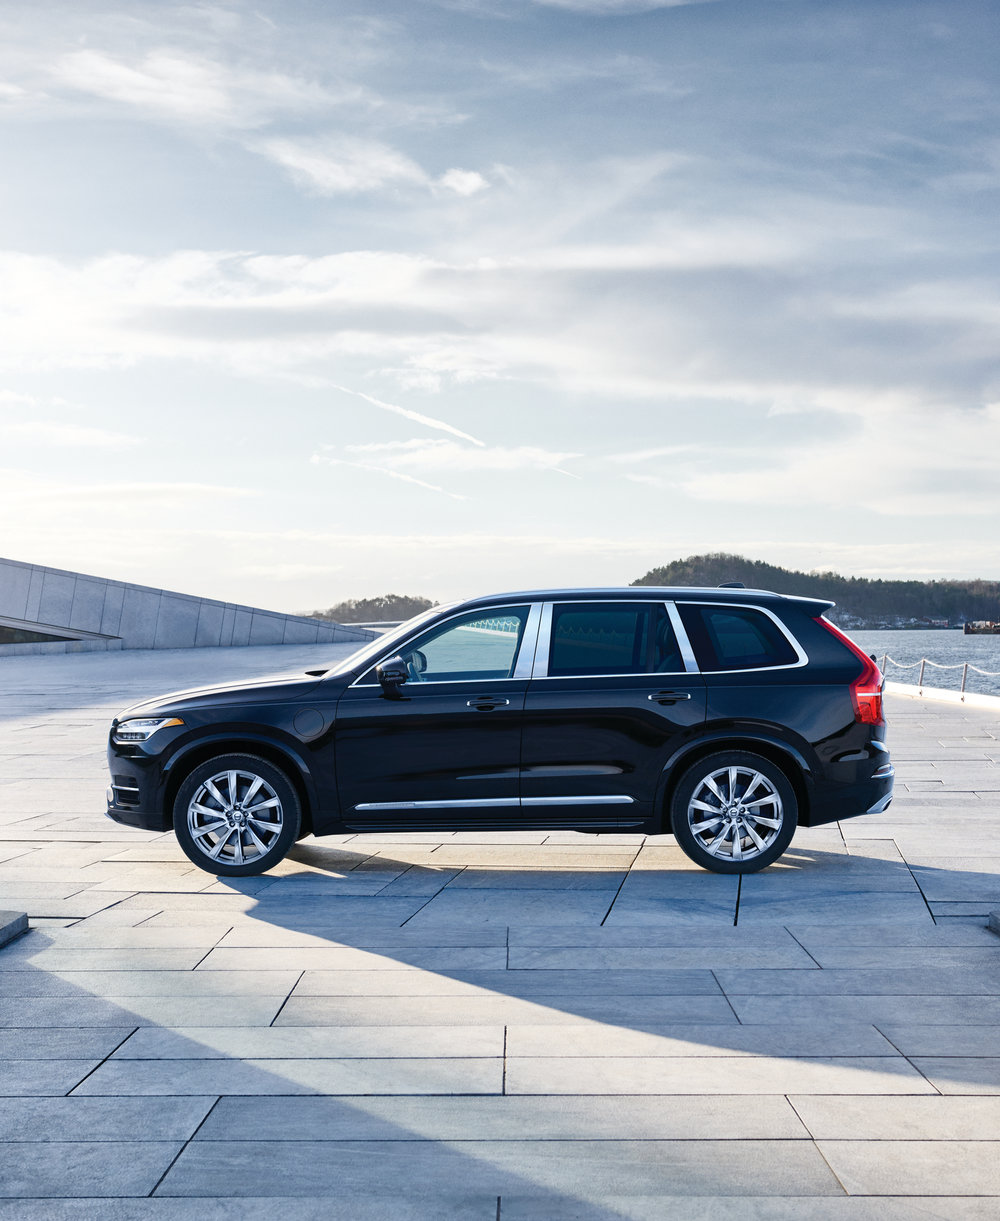 XC90   USA, EURO, CHINA, UK, CANADA, IRELAND, SOUTH AFRICA, LATIN AMERICA, RUSSIA, MIDDLE EAST, AFRICA